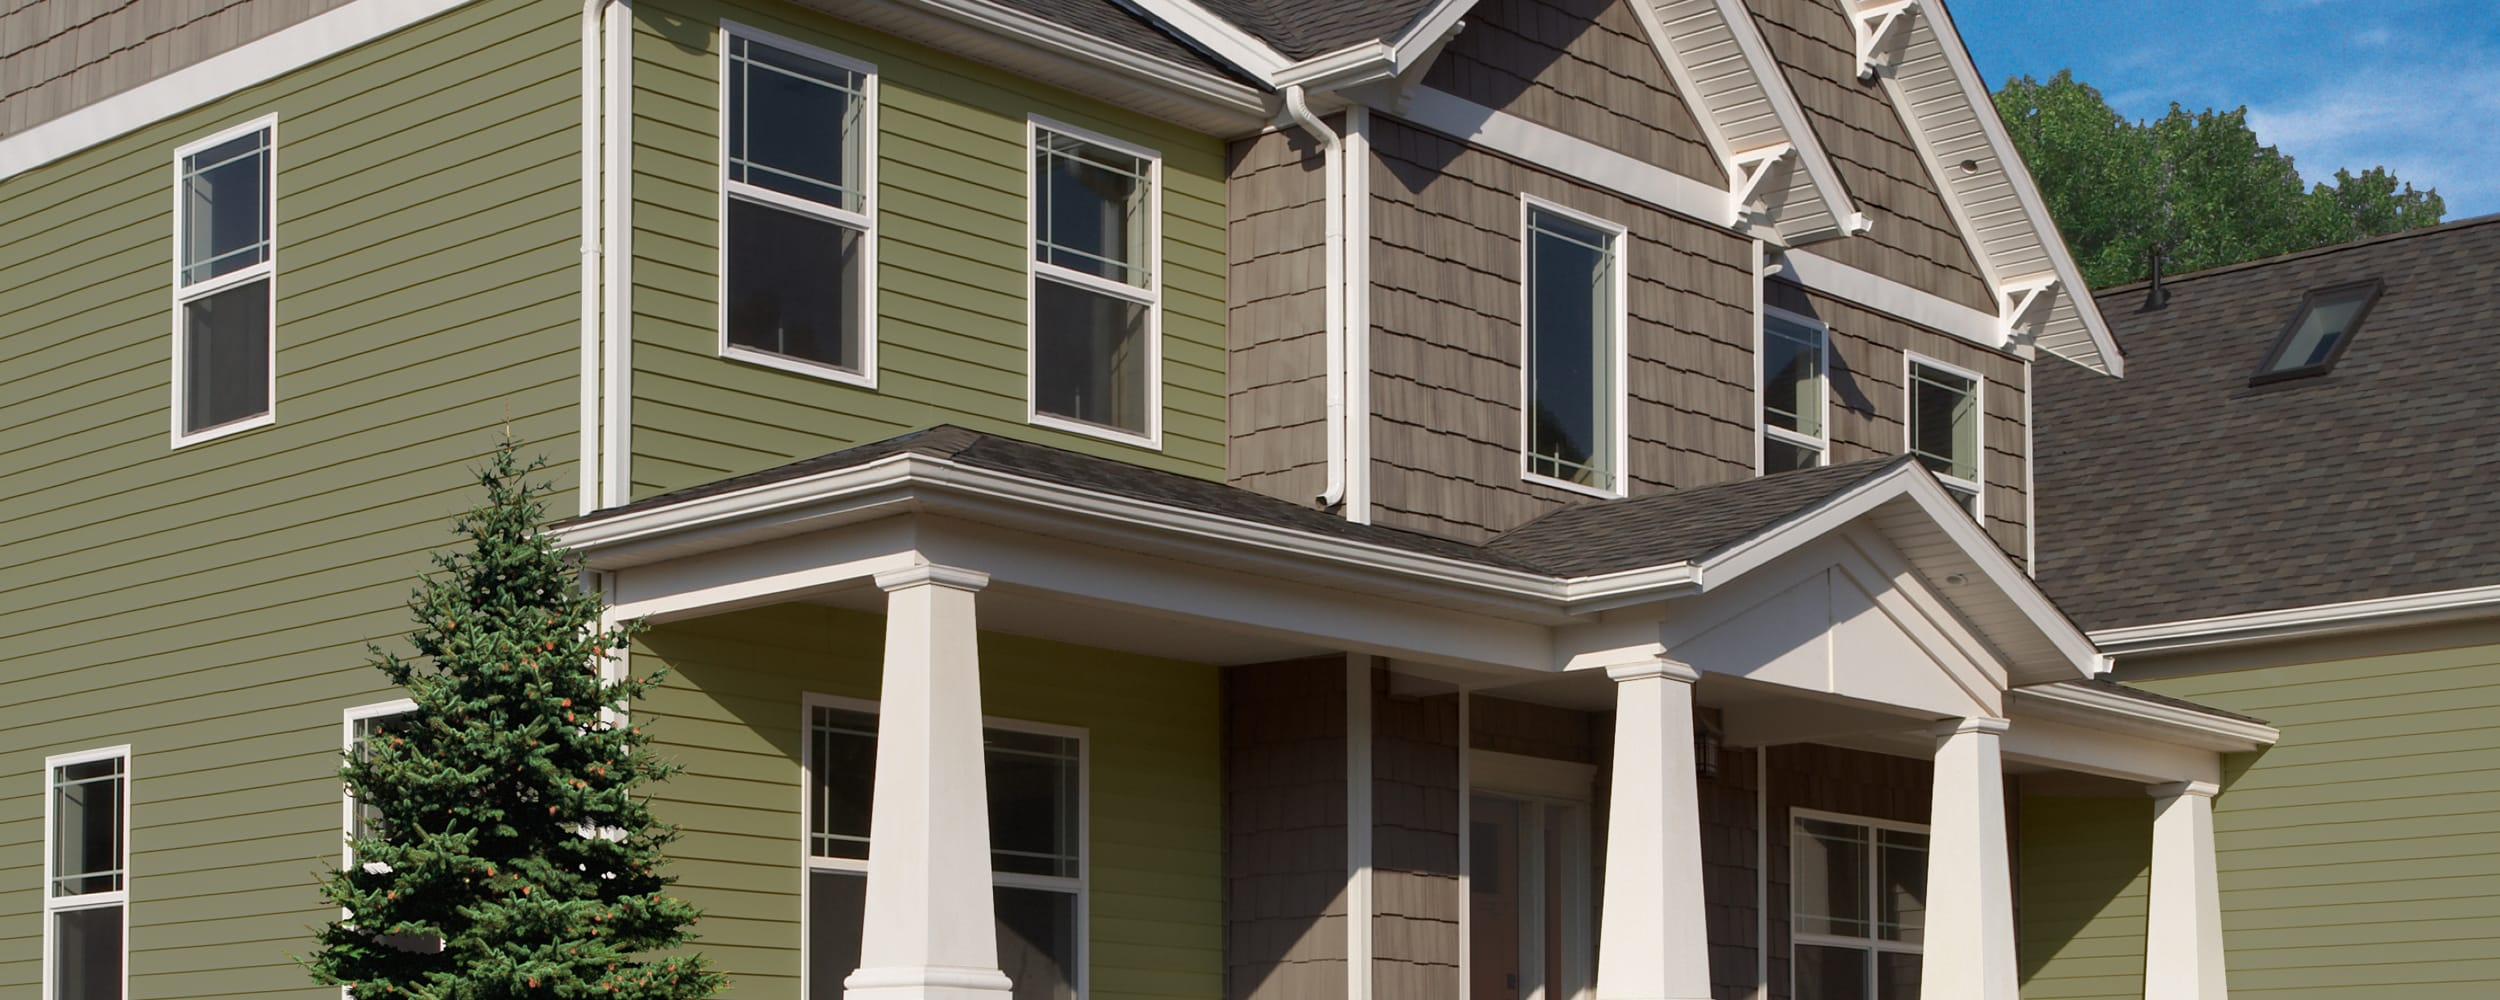 Sustainability of vinyl siding green building products vsi for Sustainable siding